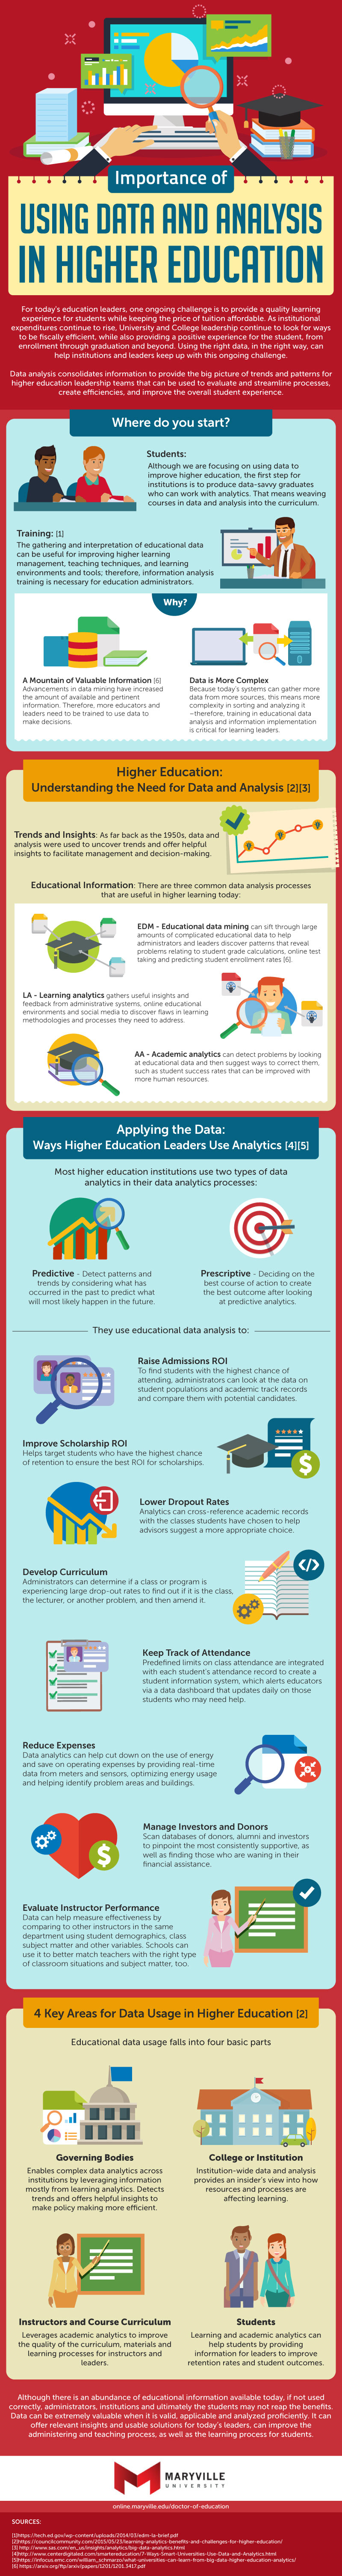 The Importance of Data and Analysis in Higher Education